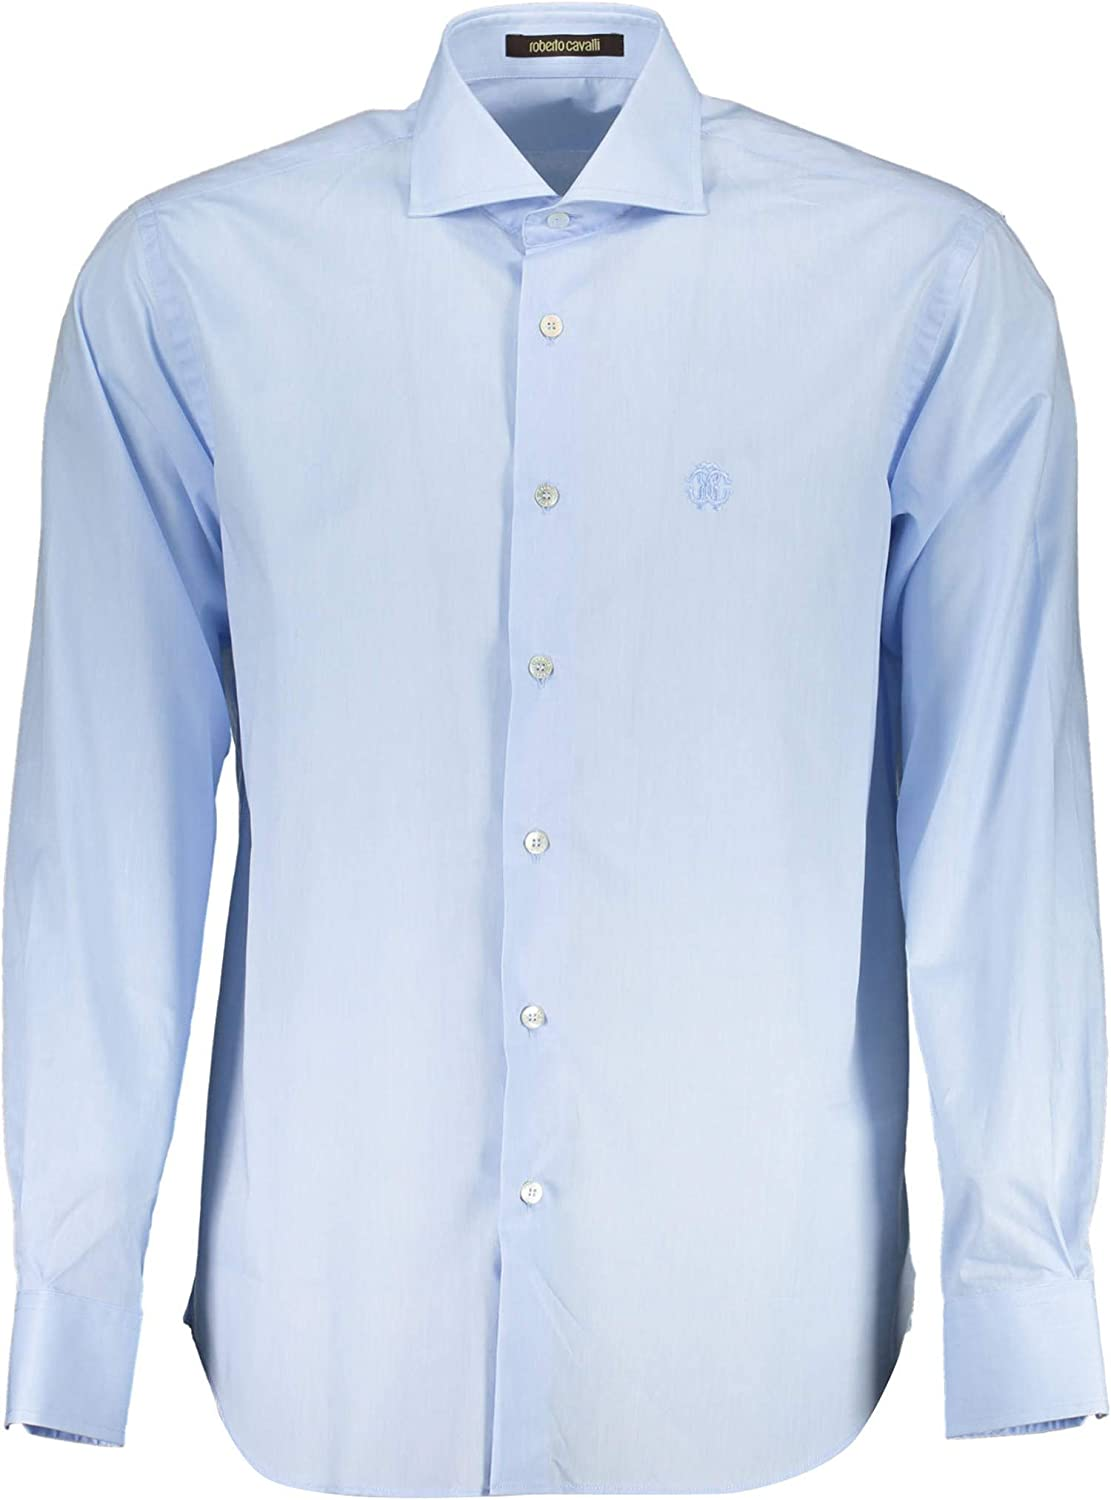 ROBERTO CAVALLI Light Blue Slim Fit 16 Dress 41 Shirt Limited Special Price Logo Recommended